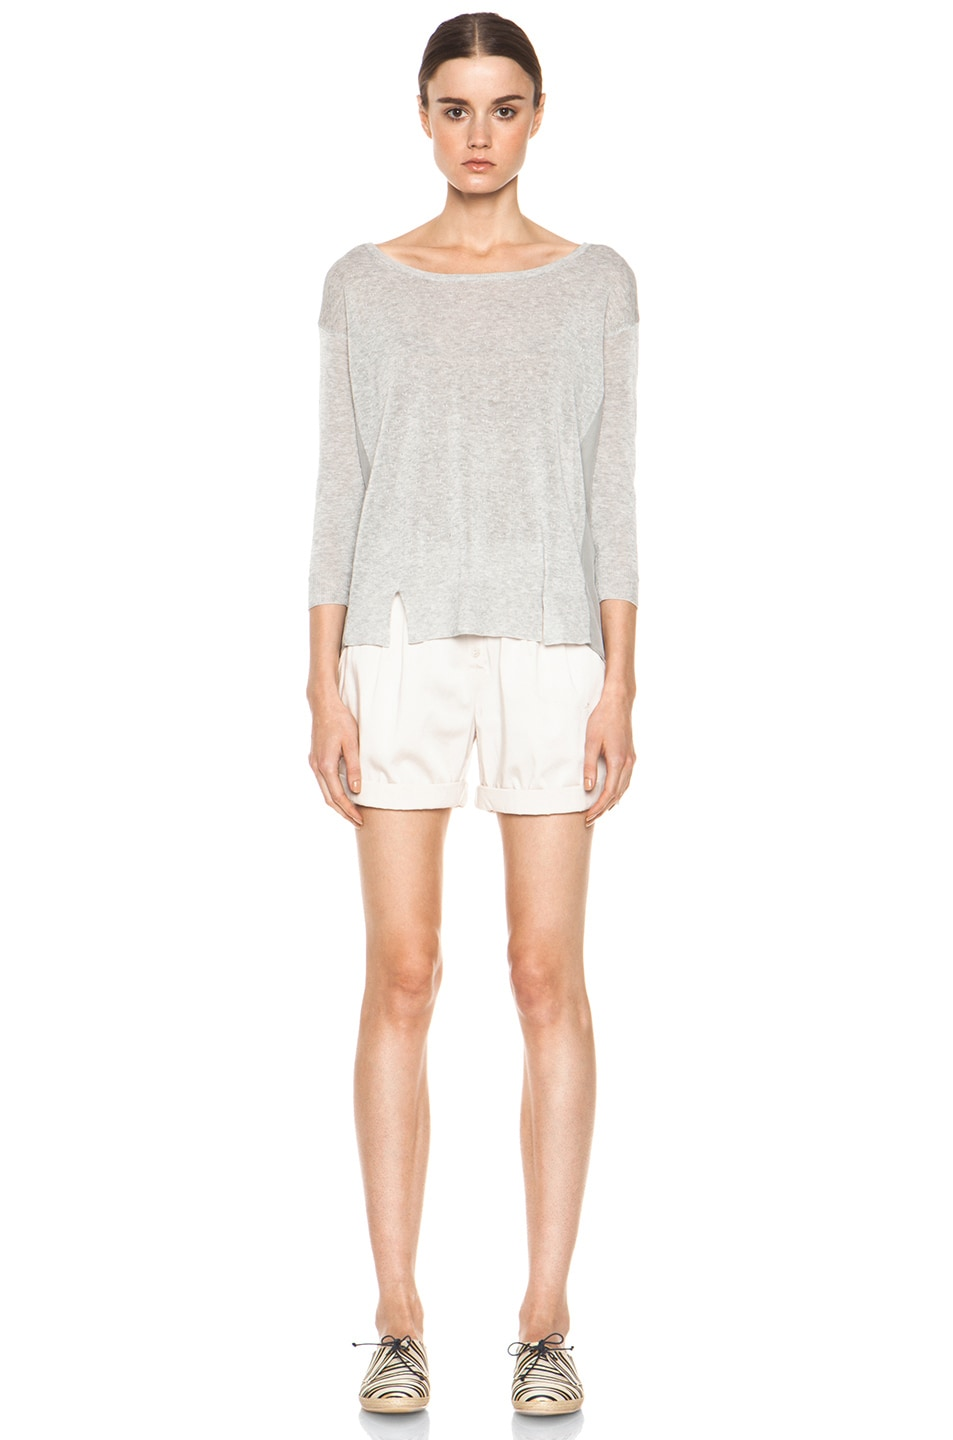 Image 5 of Girl. by Band of Outsiders Malibu Basic Sweater in Grey Heather